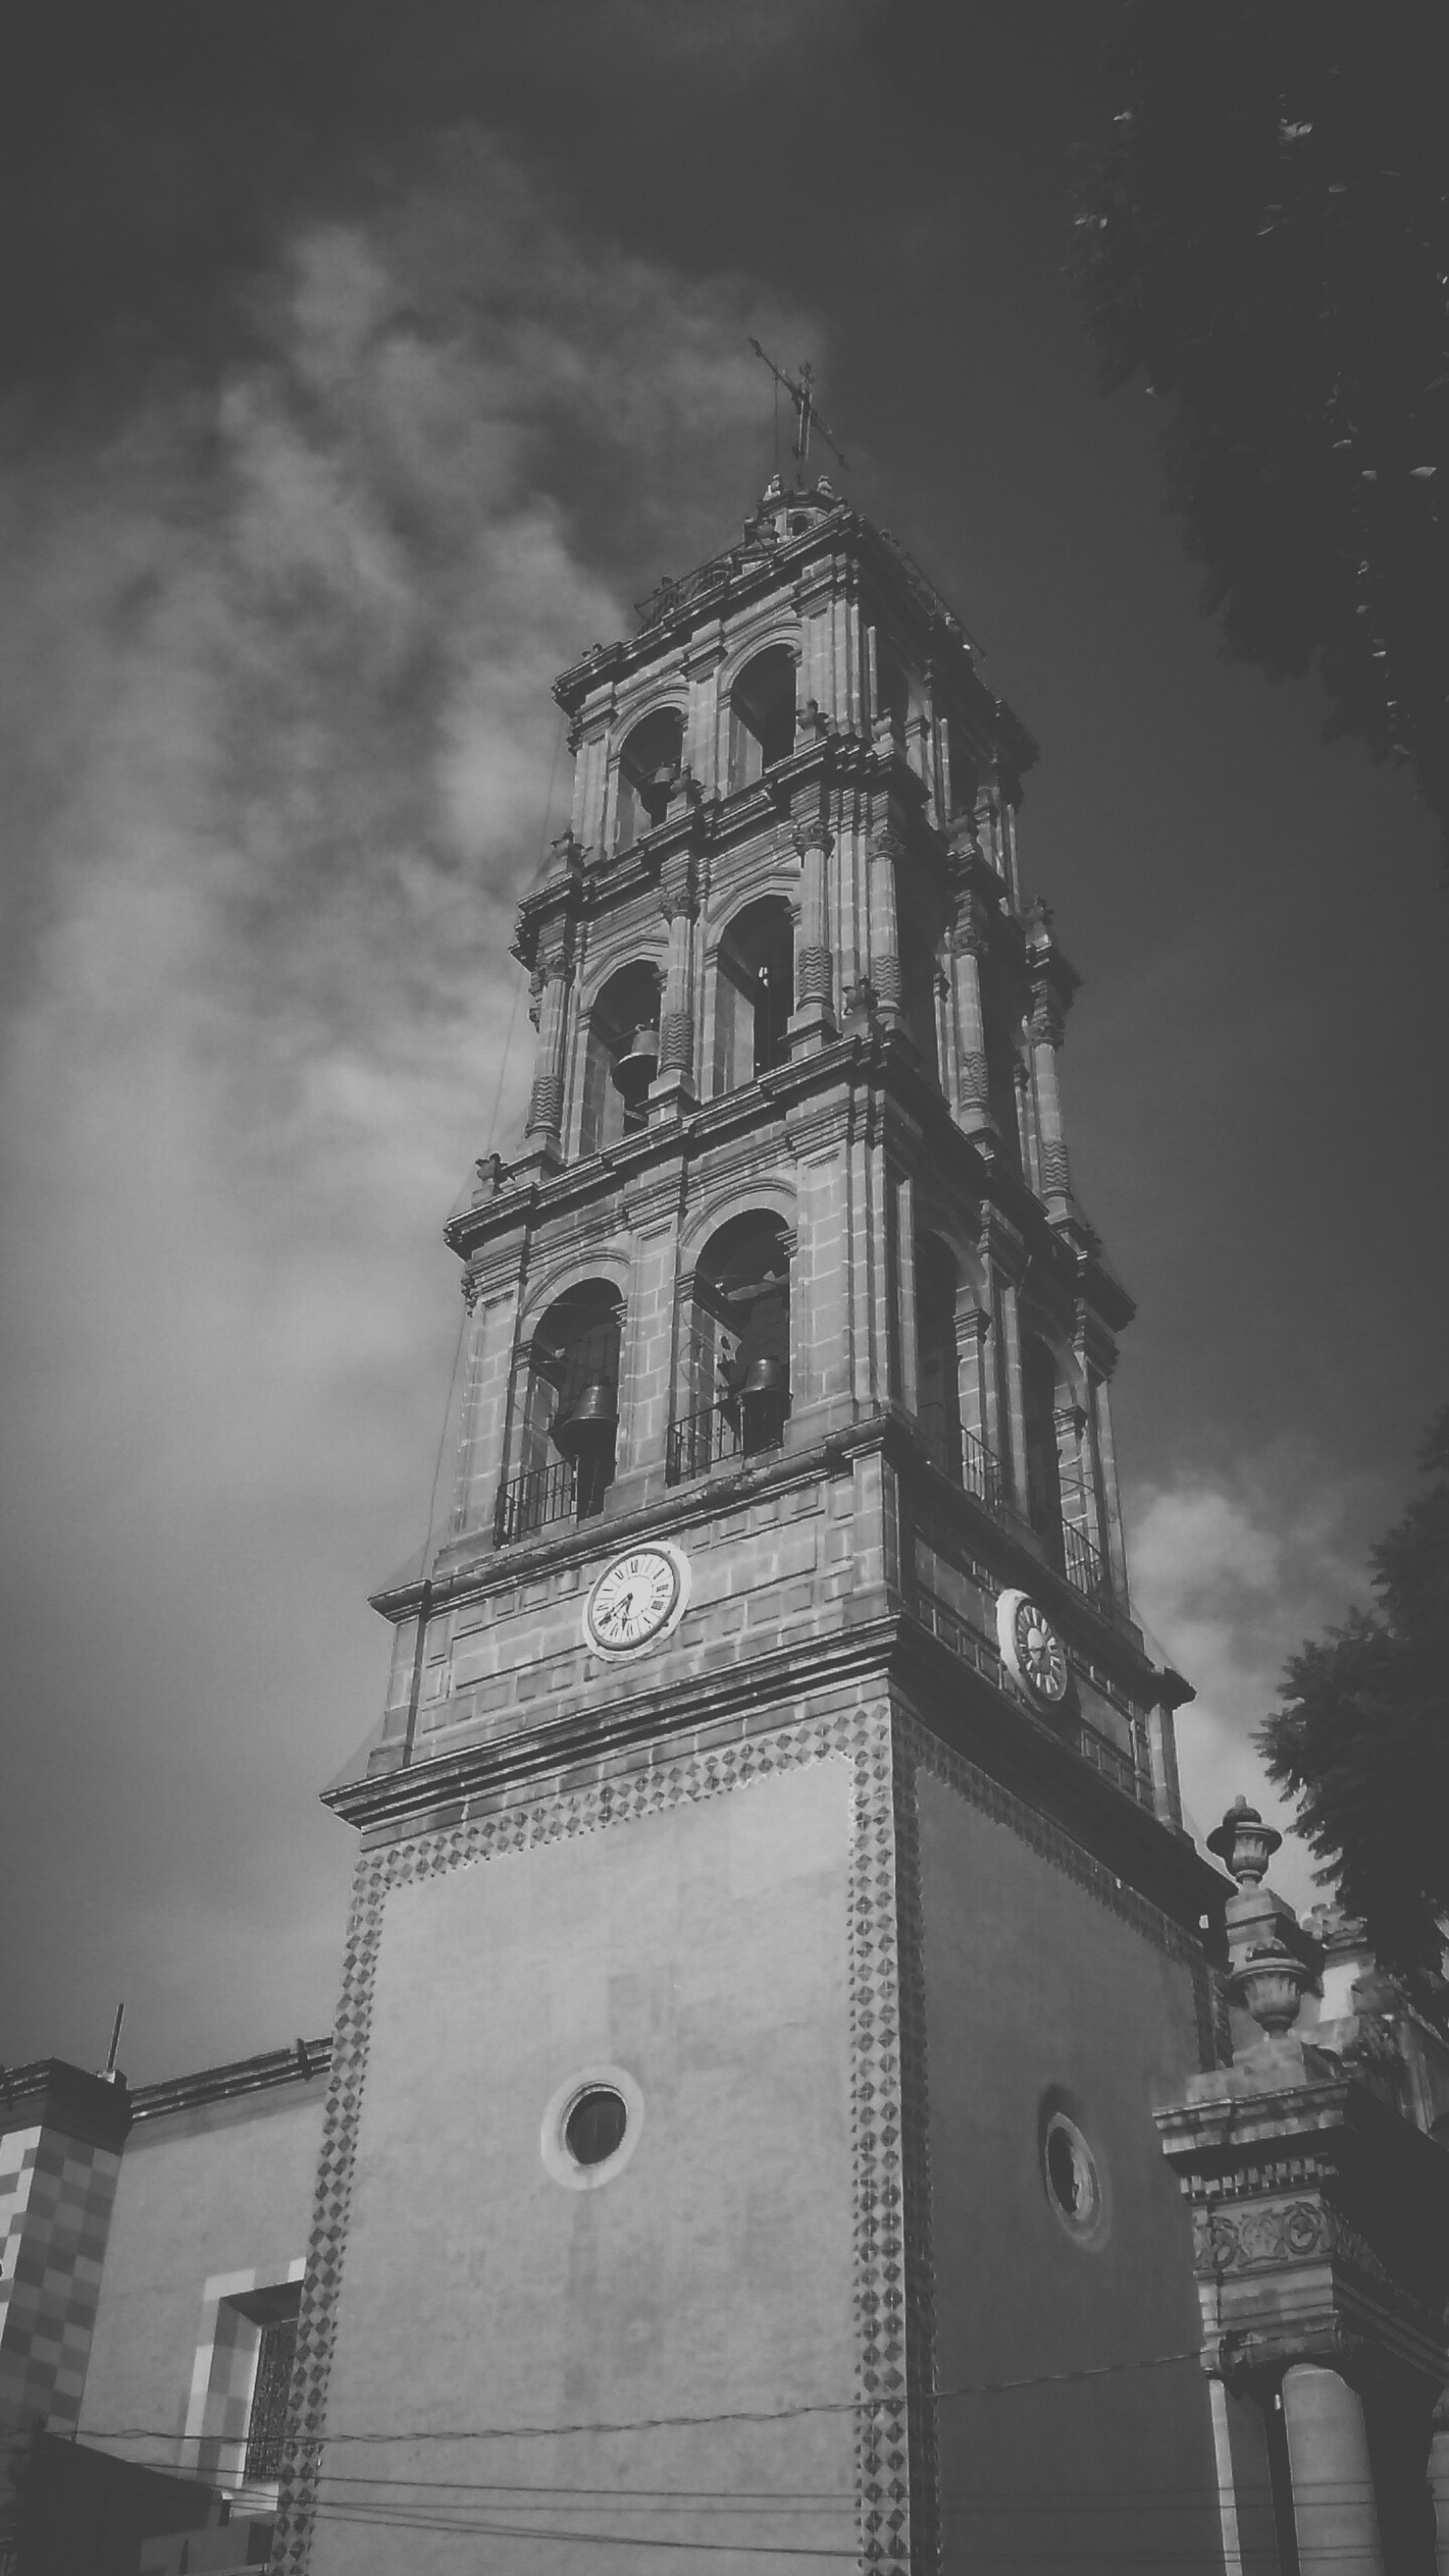 architecture, building exterior, built structure, low angle view, religion, place of worship, church, spirituality, sky, cathedral, tower, cloud - sky, clock tower, history, cross, steeple, outdoors, day